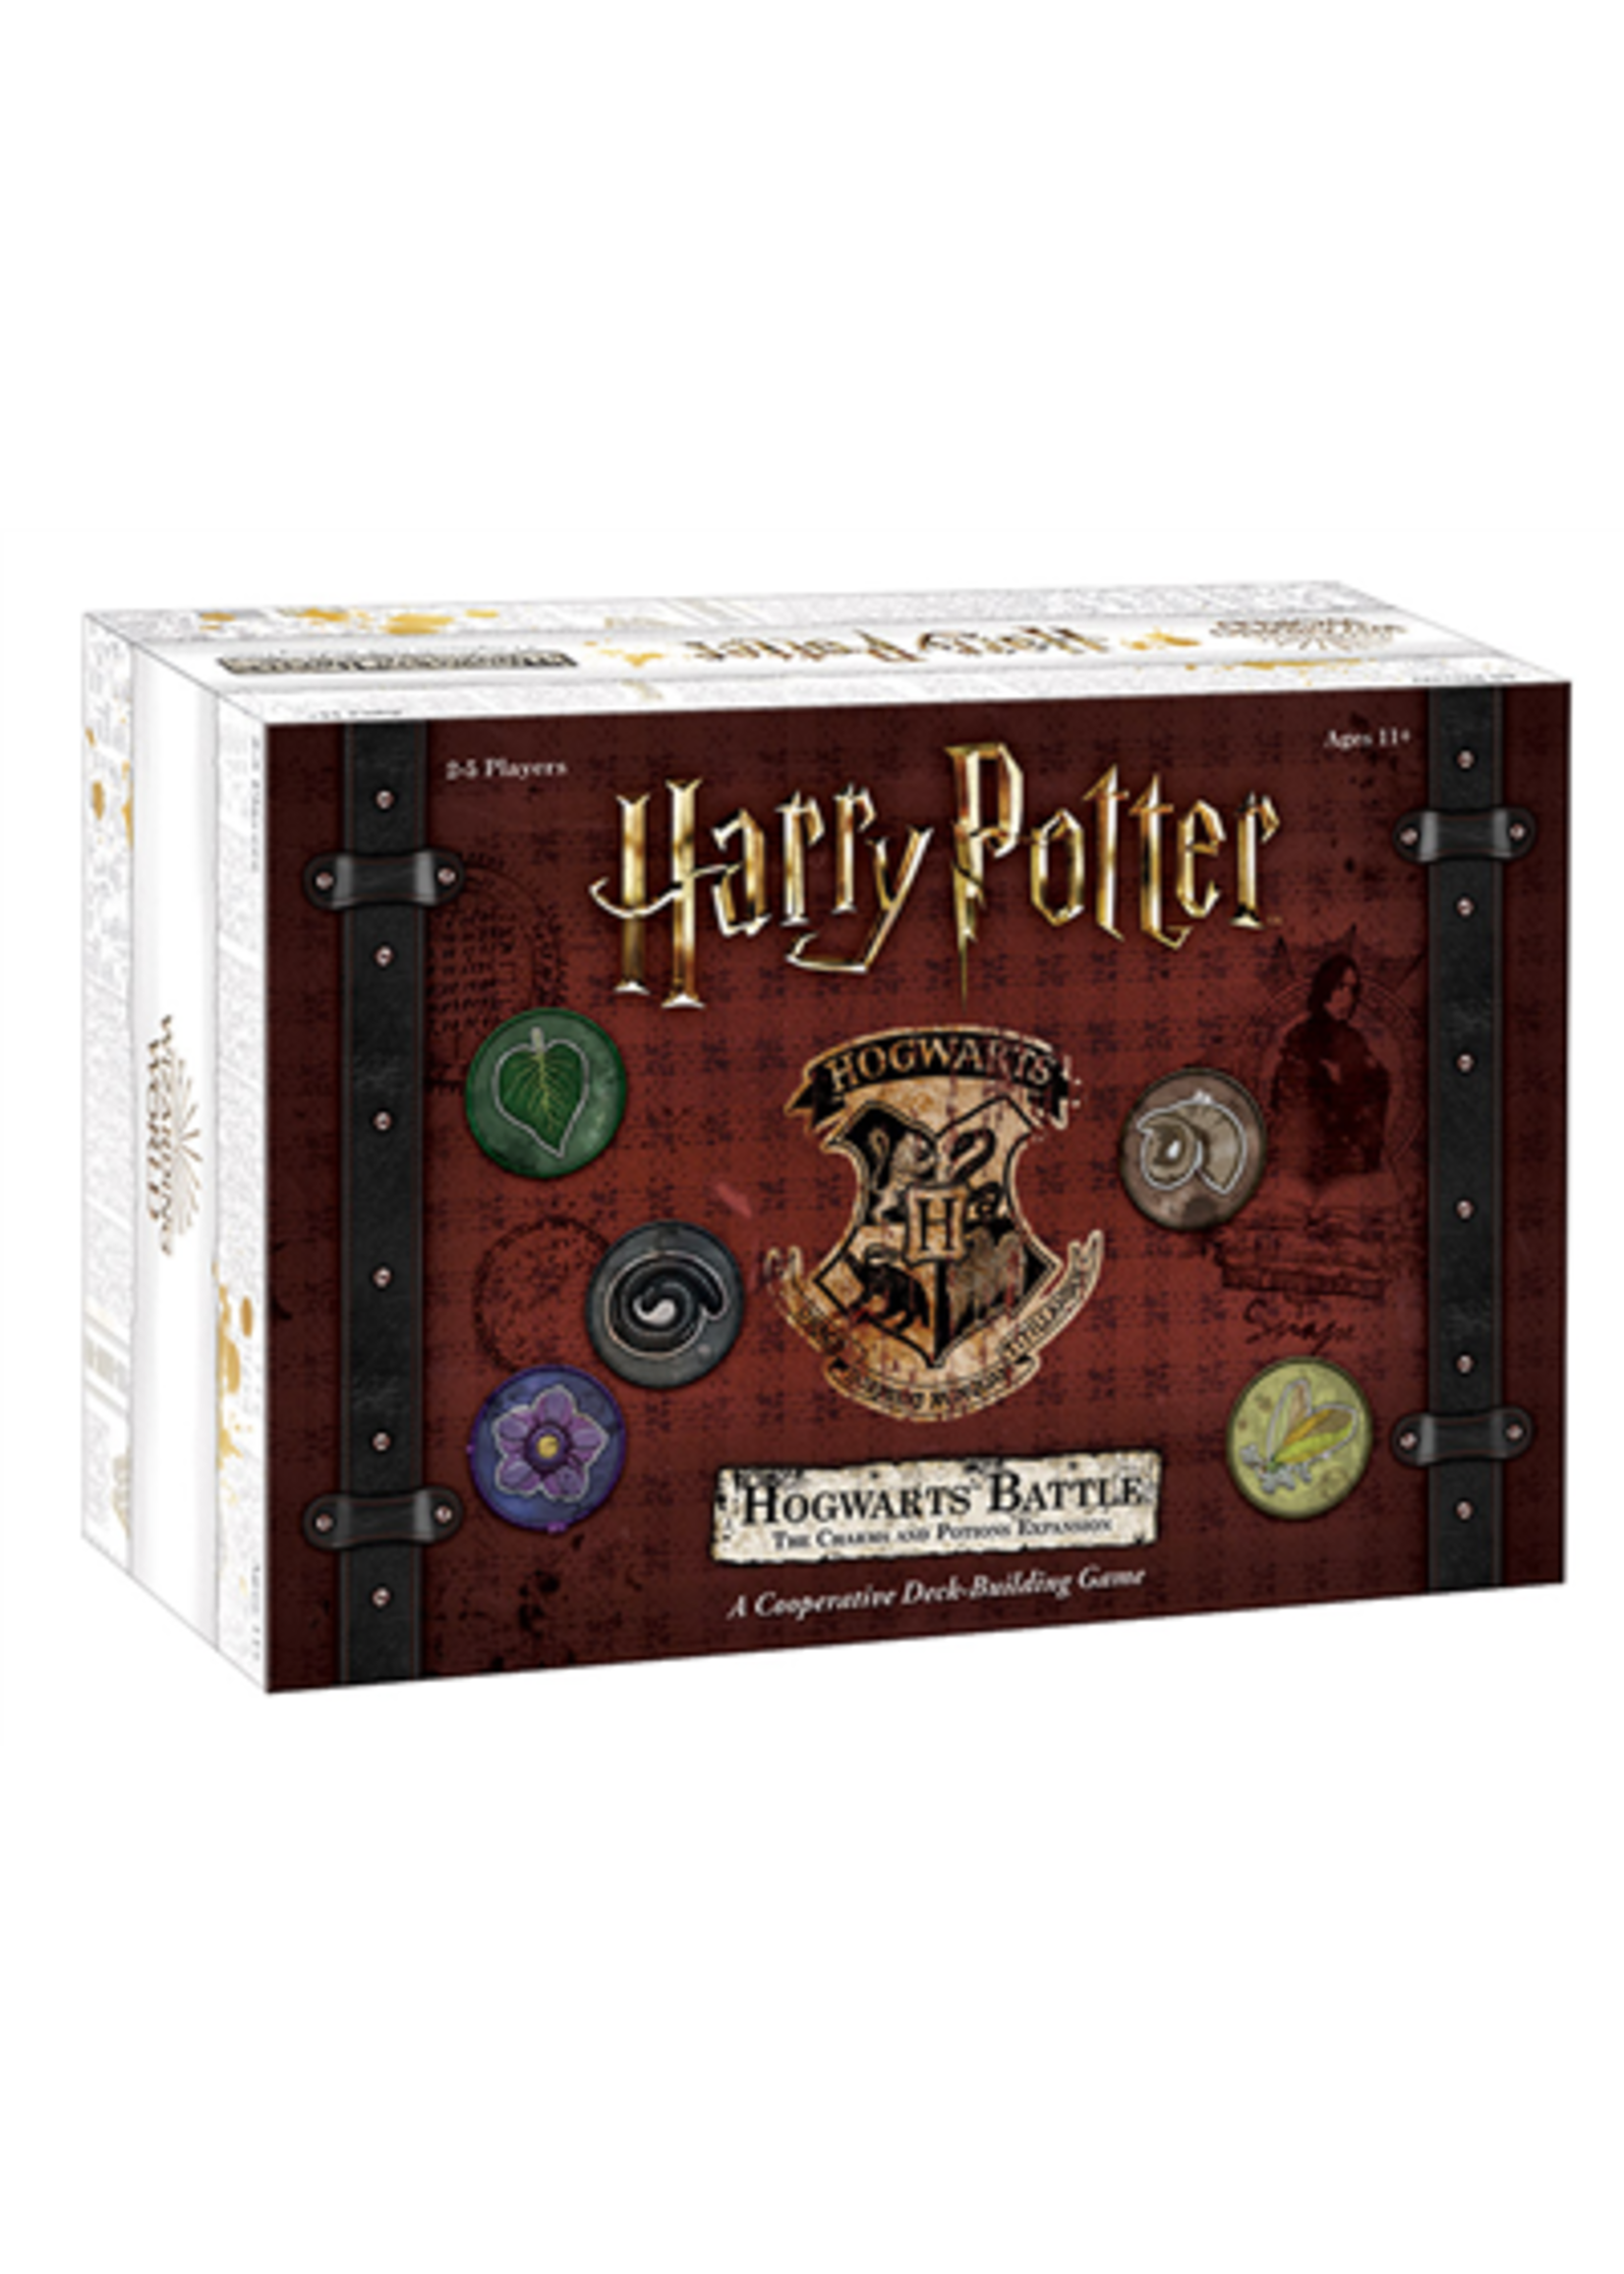 Harry Potter Hogwarts Battle The Charms and Potions Expansion